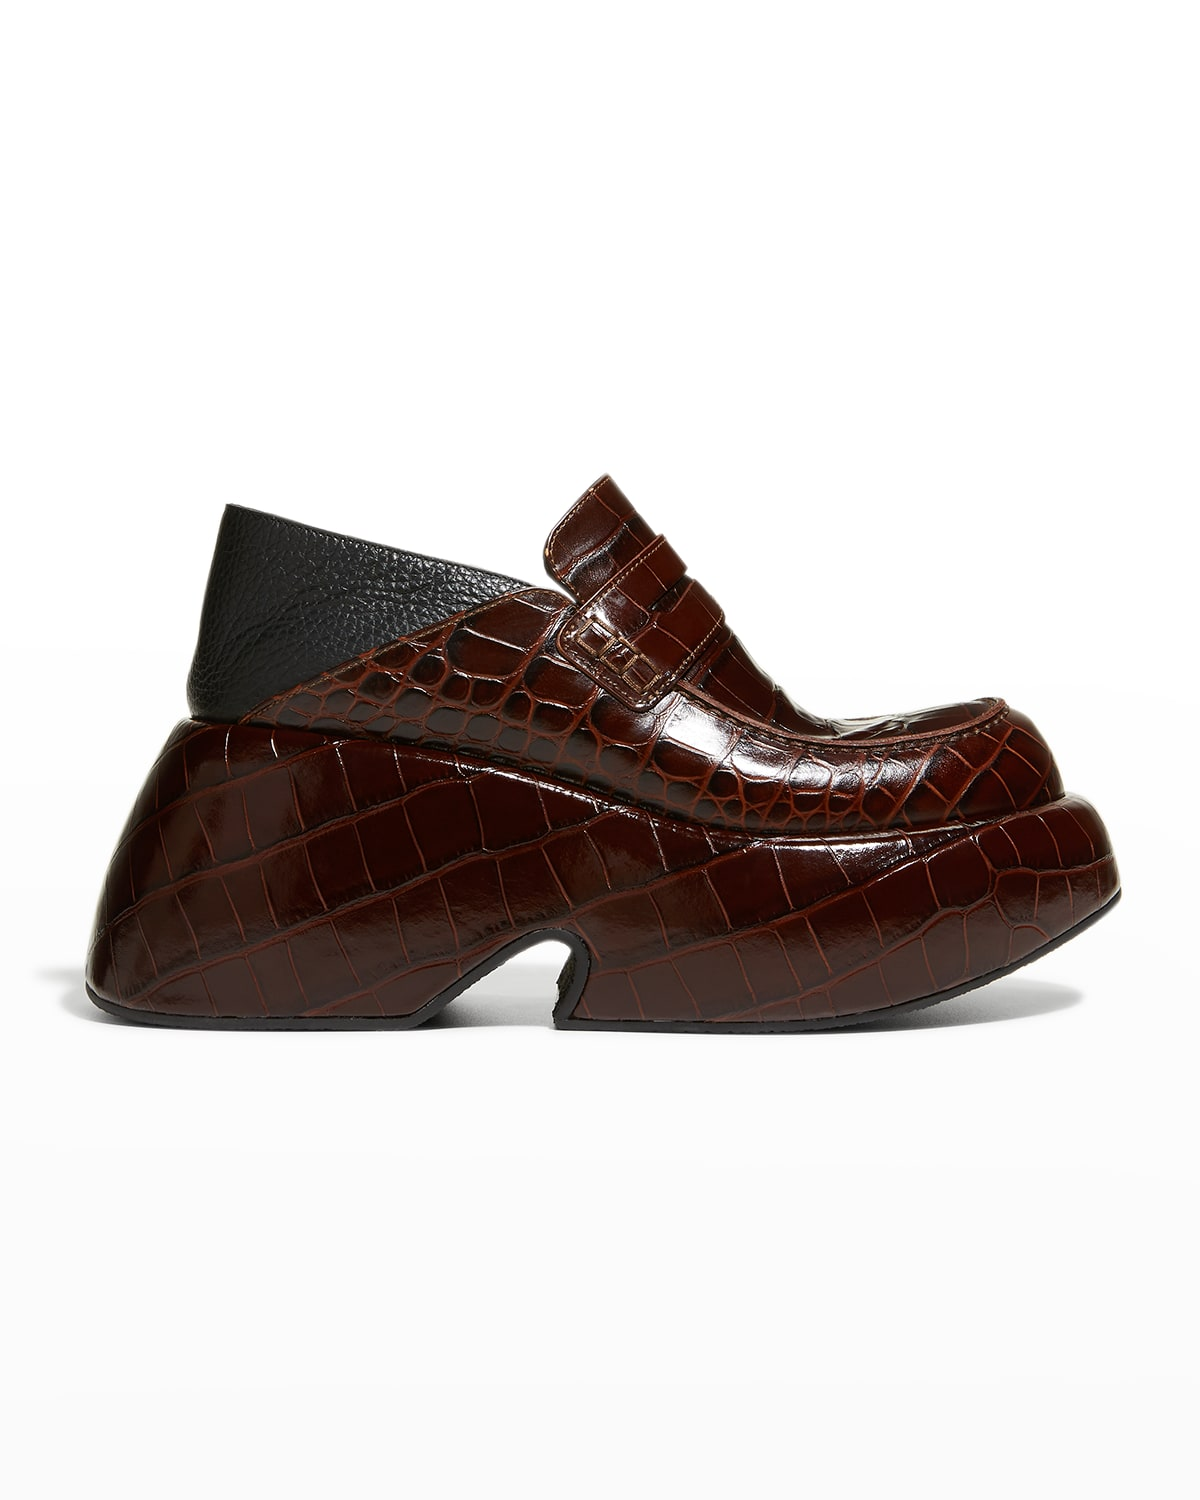 Mock-Croc Wedge Penny Loafers